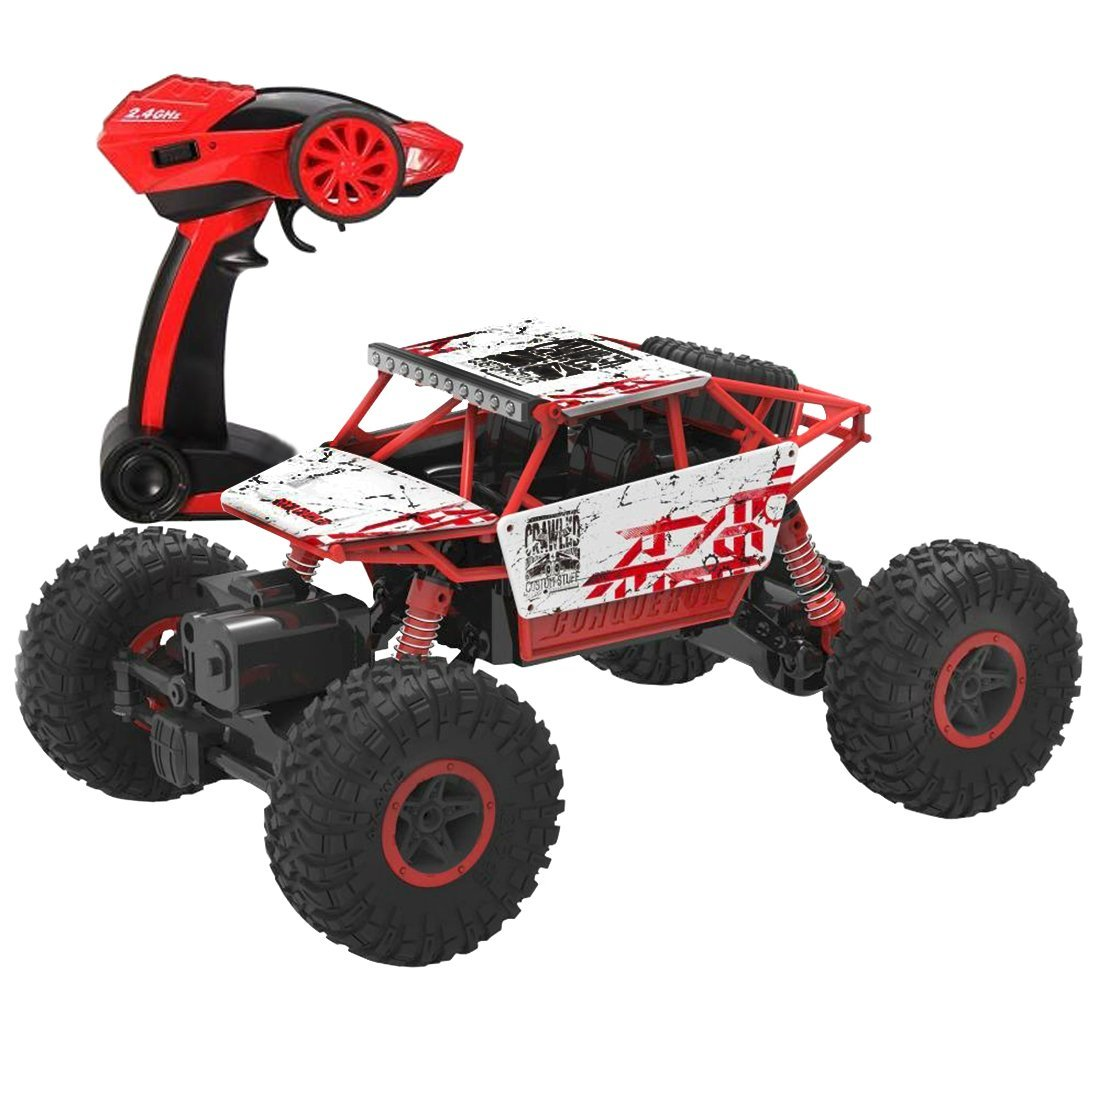 deAO 6 Kanal Fernbedienung Rock Crawler 1:18 Maßstab Off Road Car Rally Buggy (GRÜN) deAO Ltd RK-G